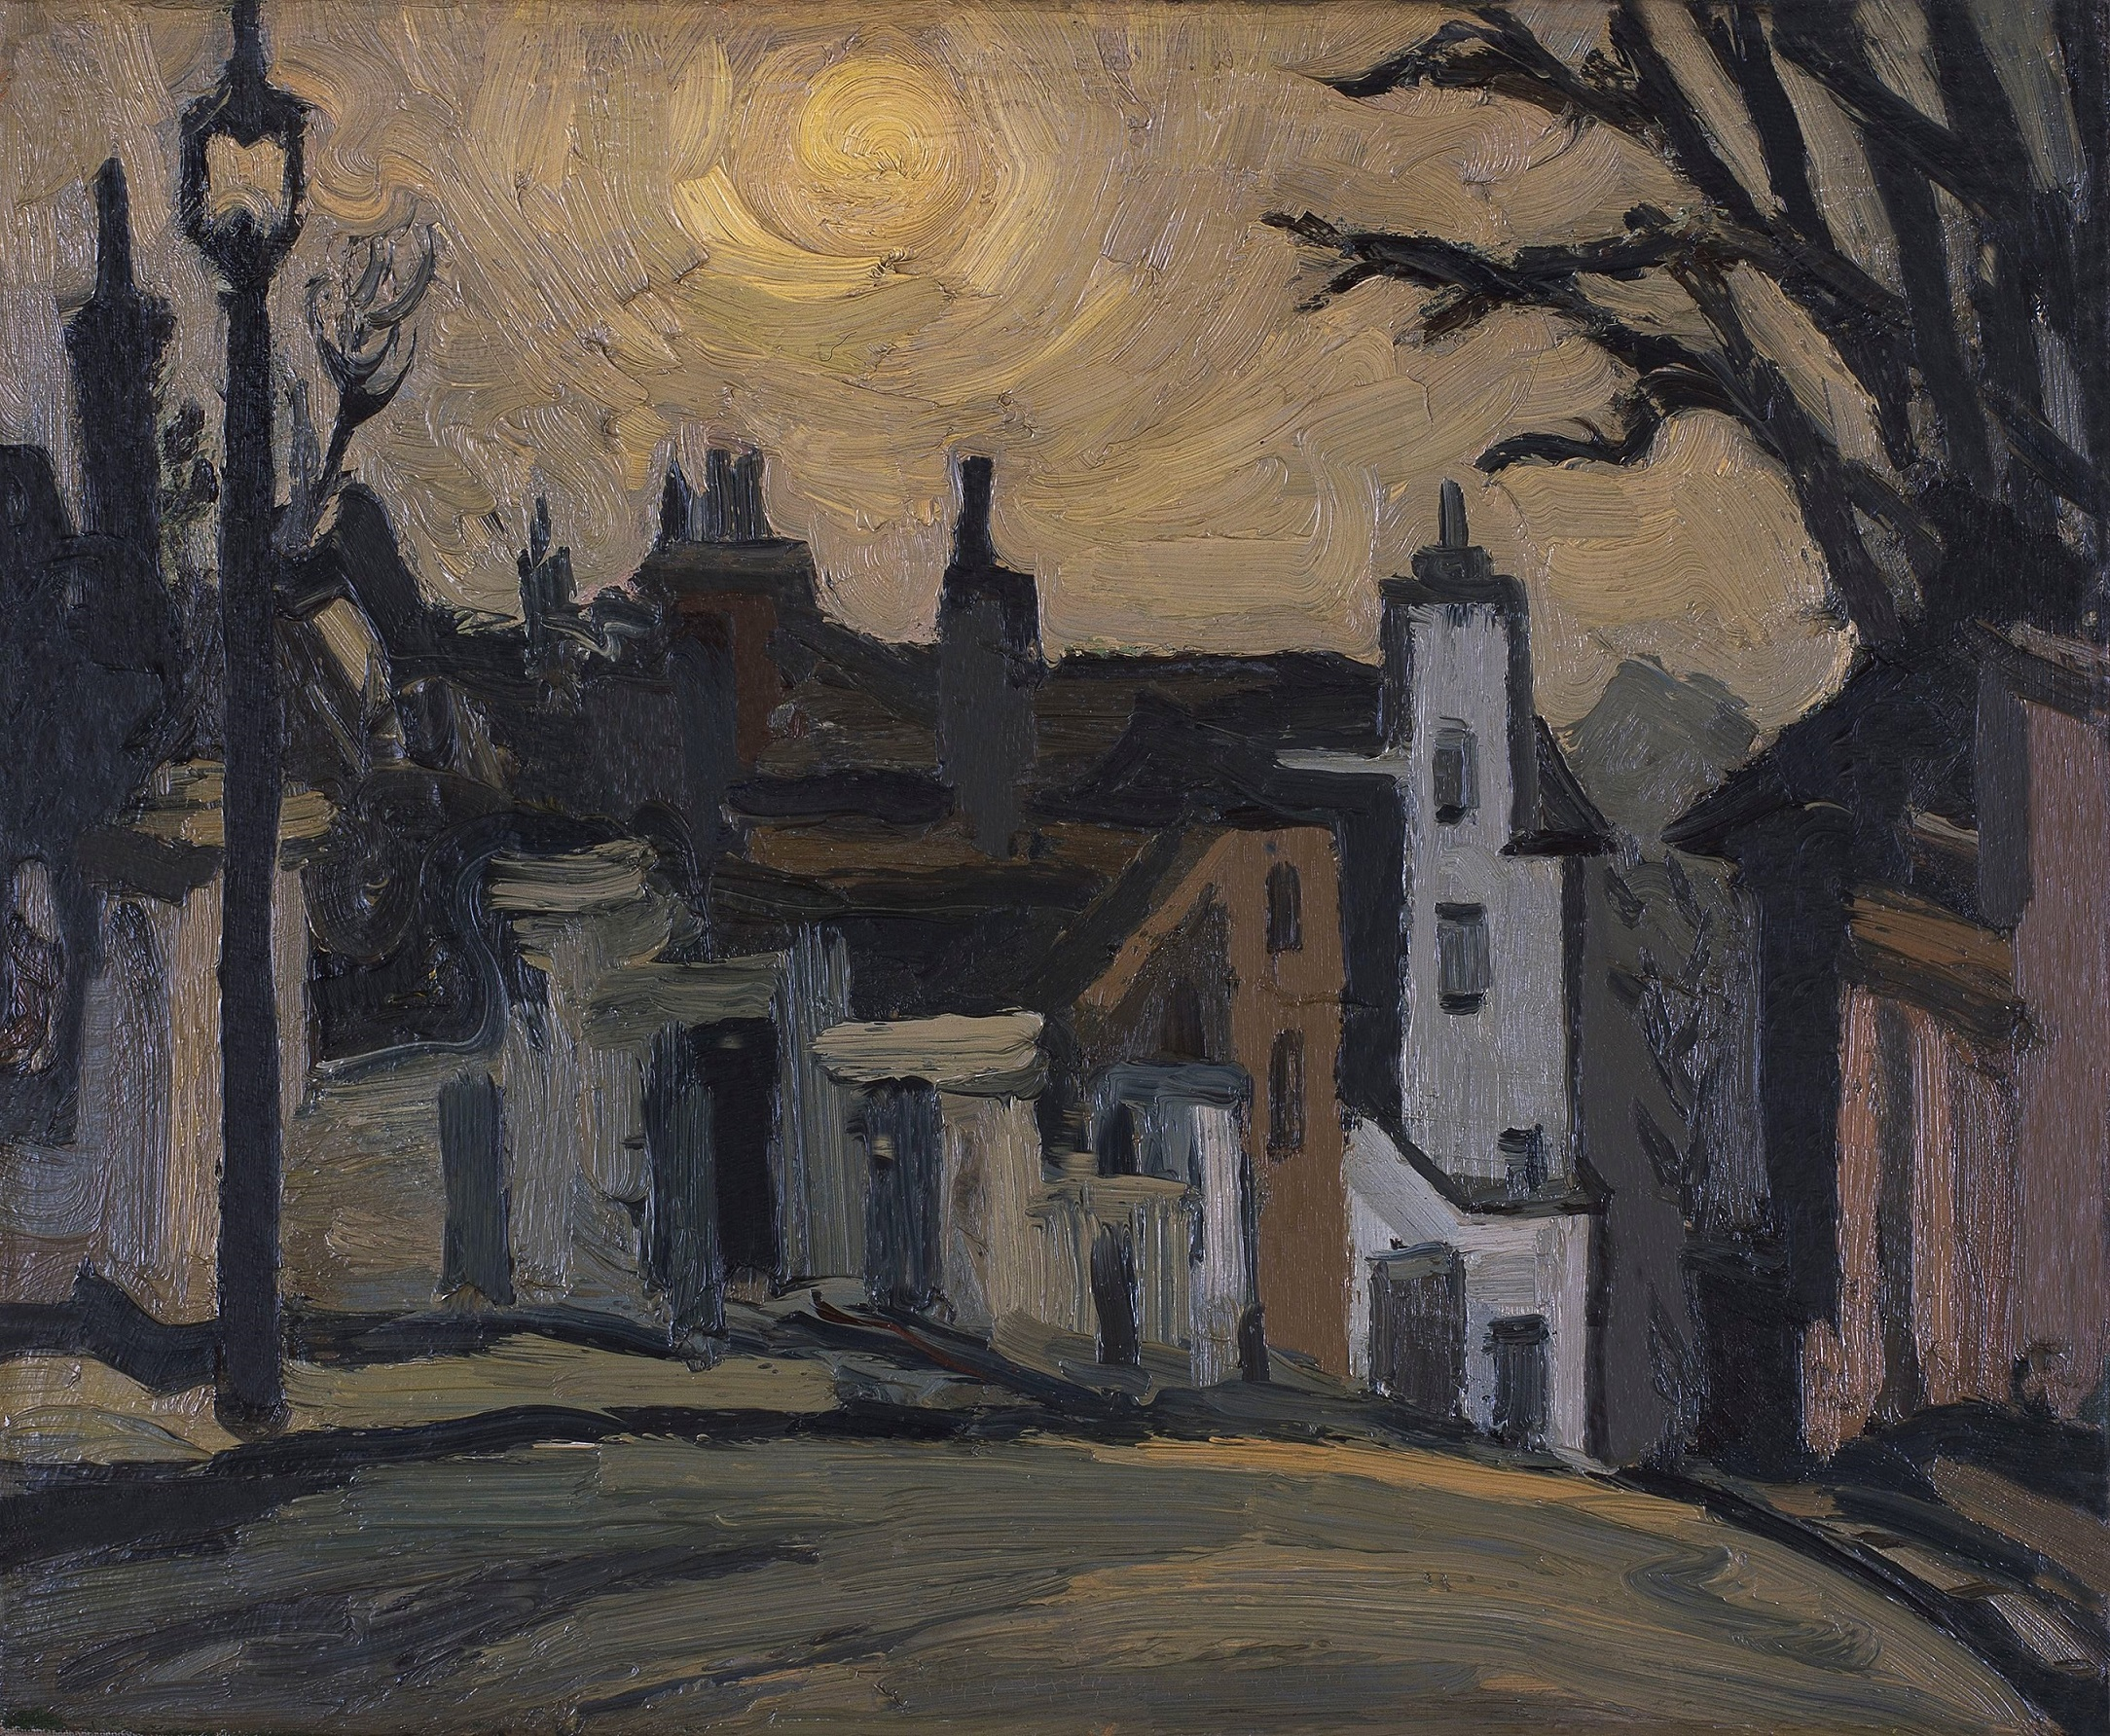 KYFFIN WILLIAMS: Paper to Palette Knife.